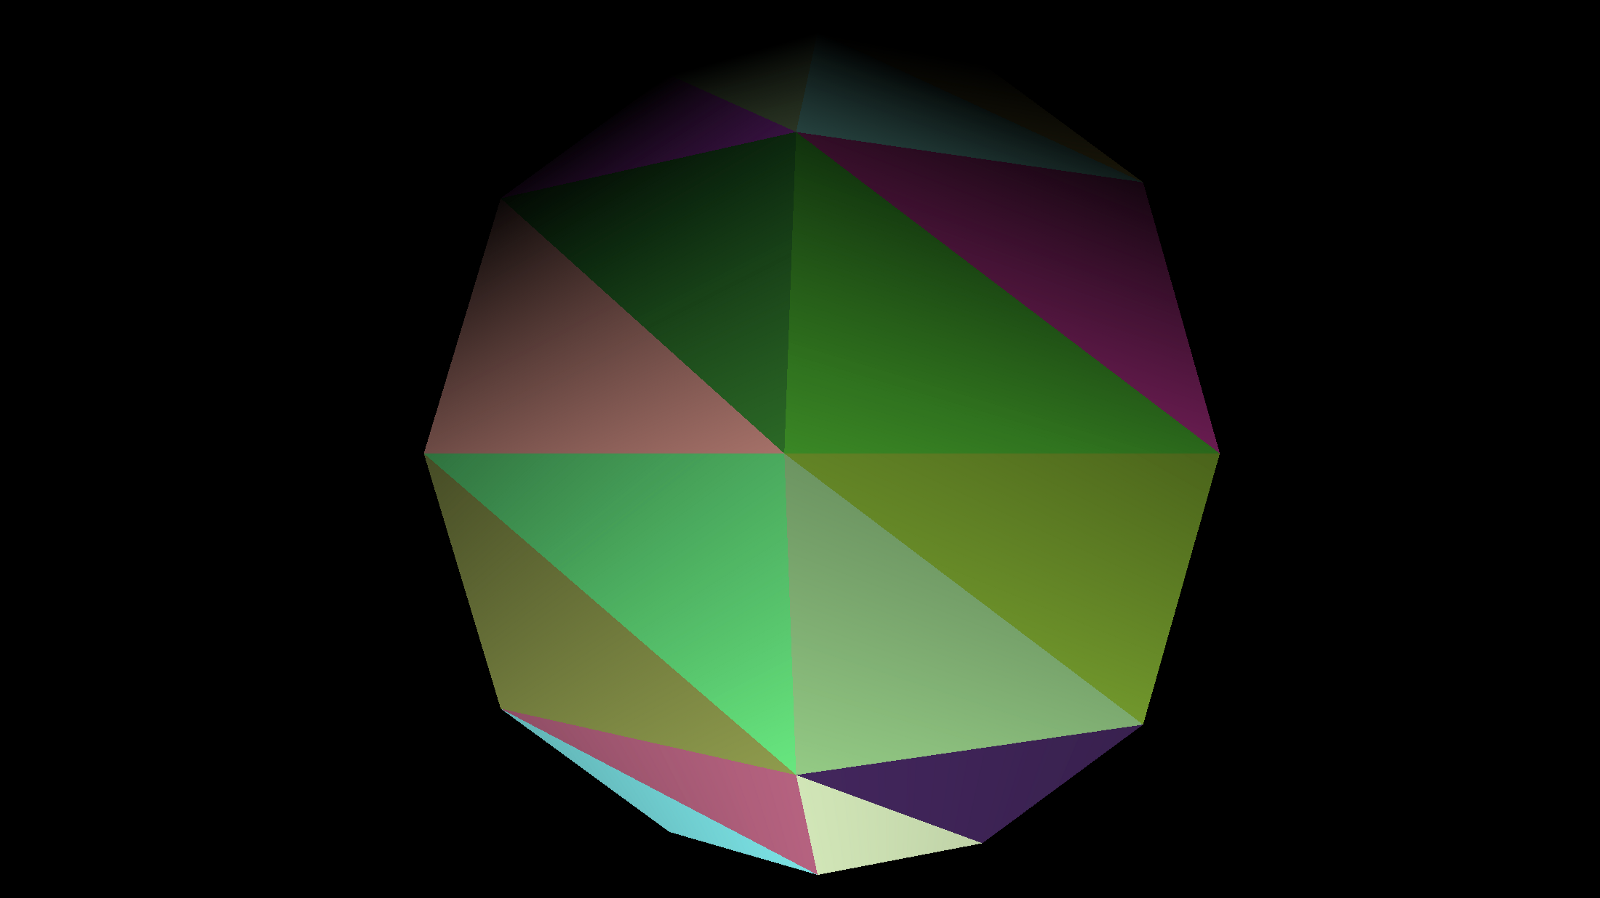 Sphere with Random Colored Faces